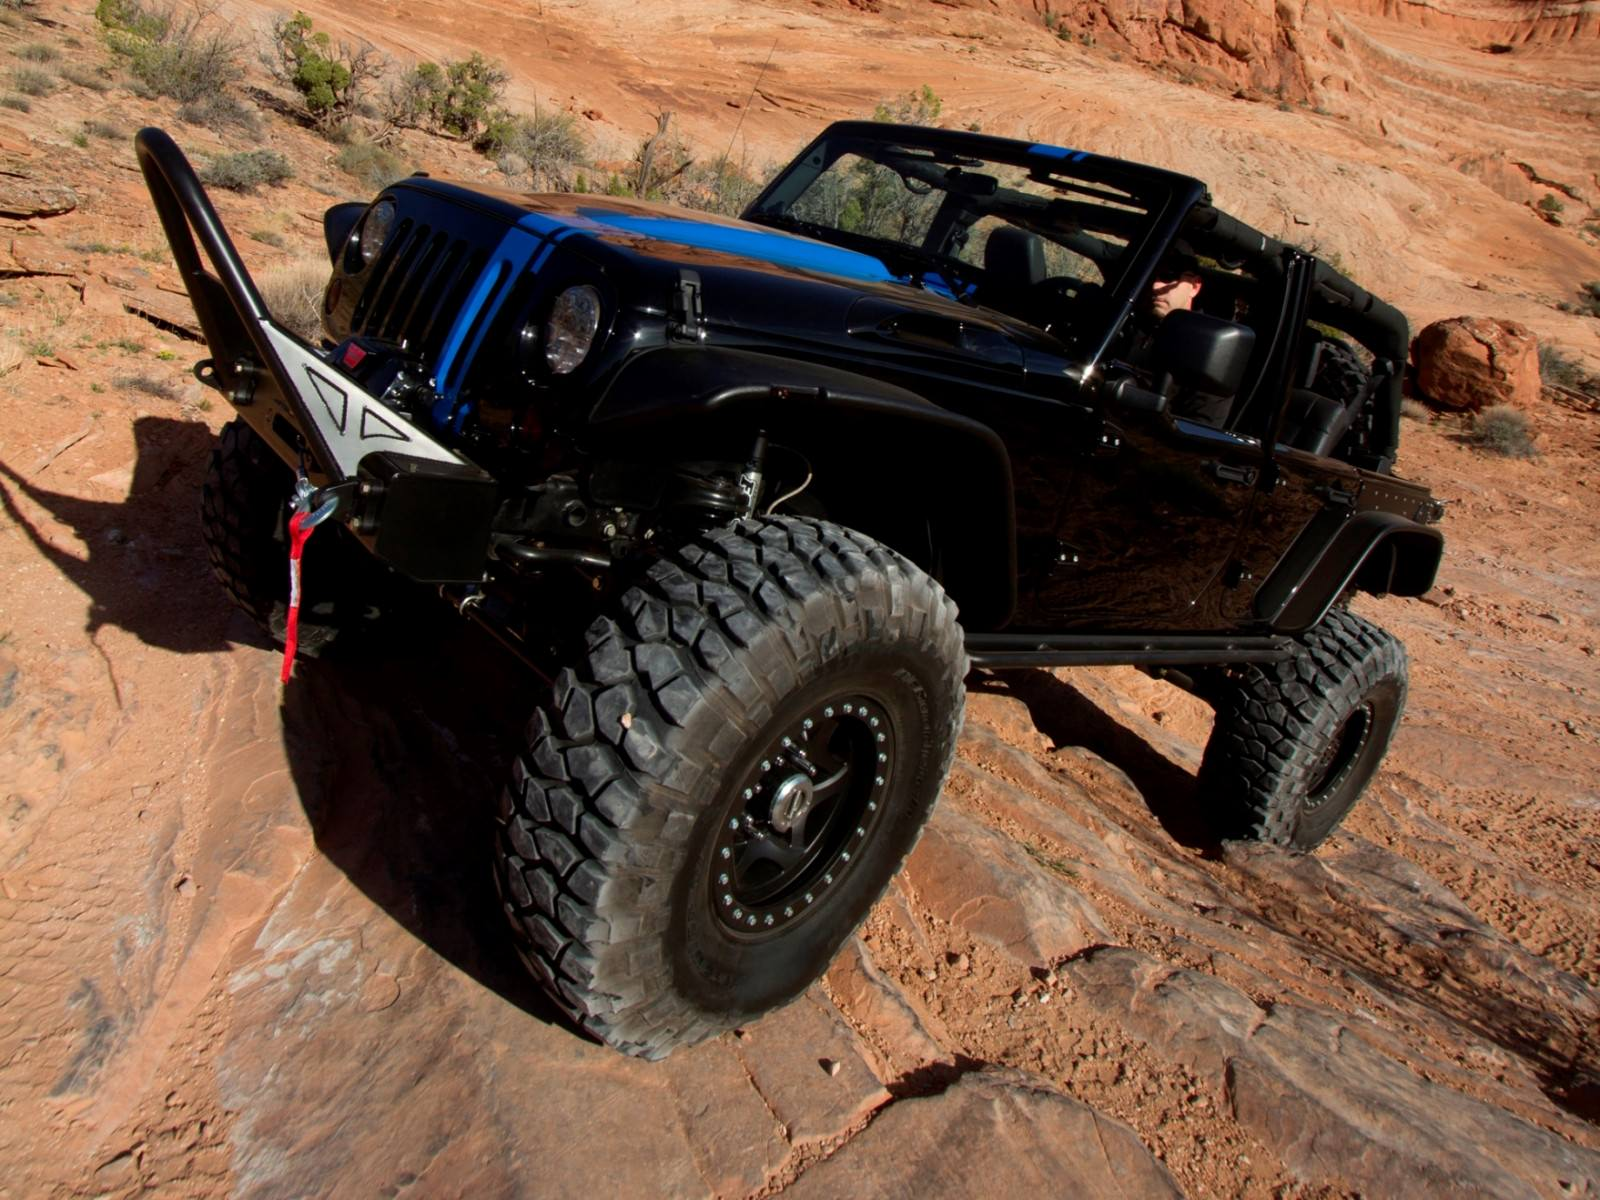 JEEP Heritage and Icons - Mega Gallery in 113 Rare Photos 106